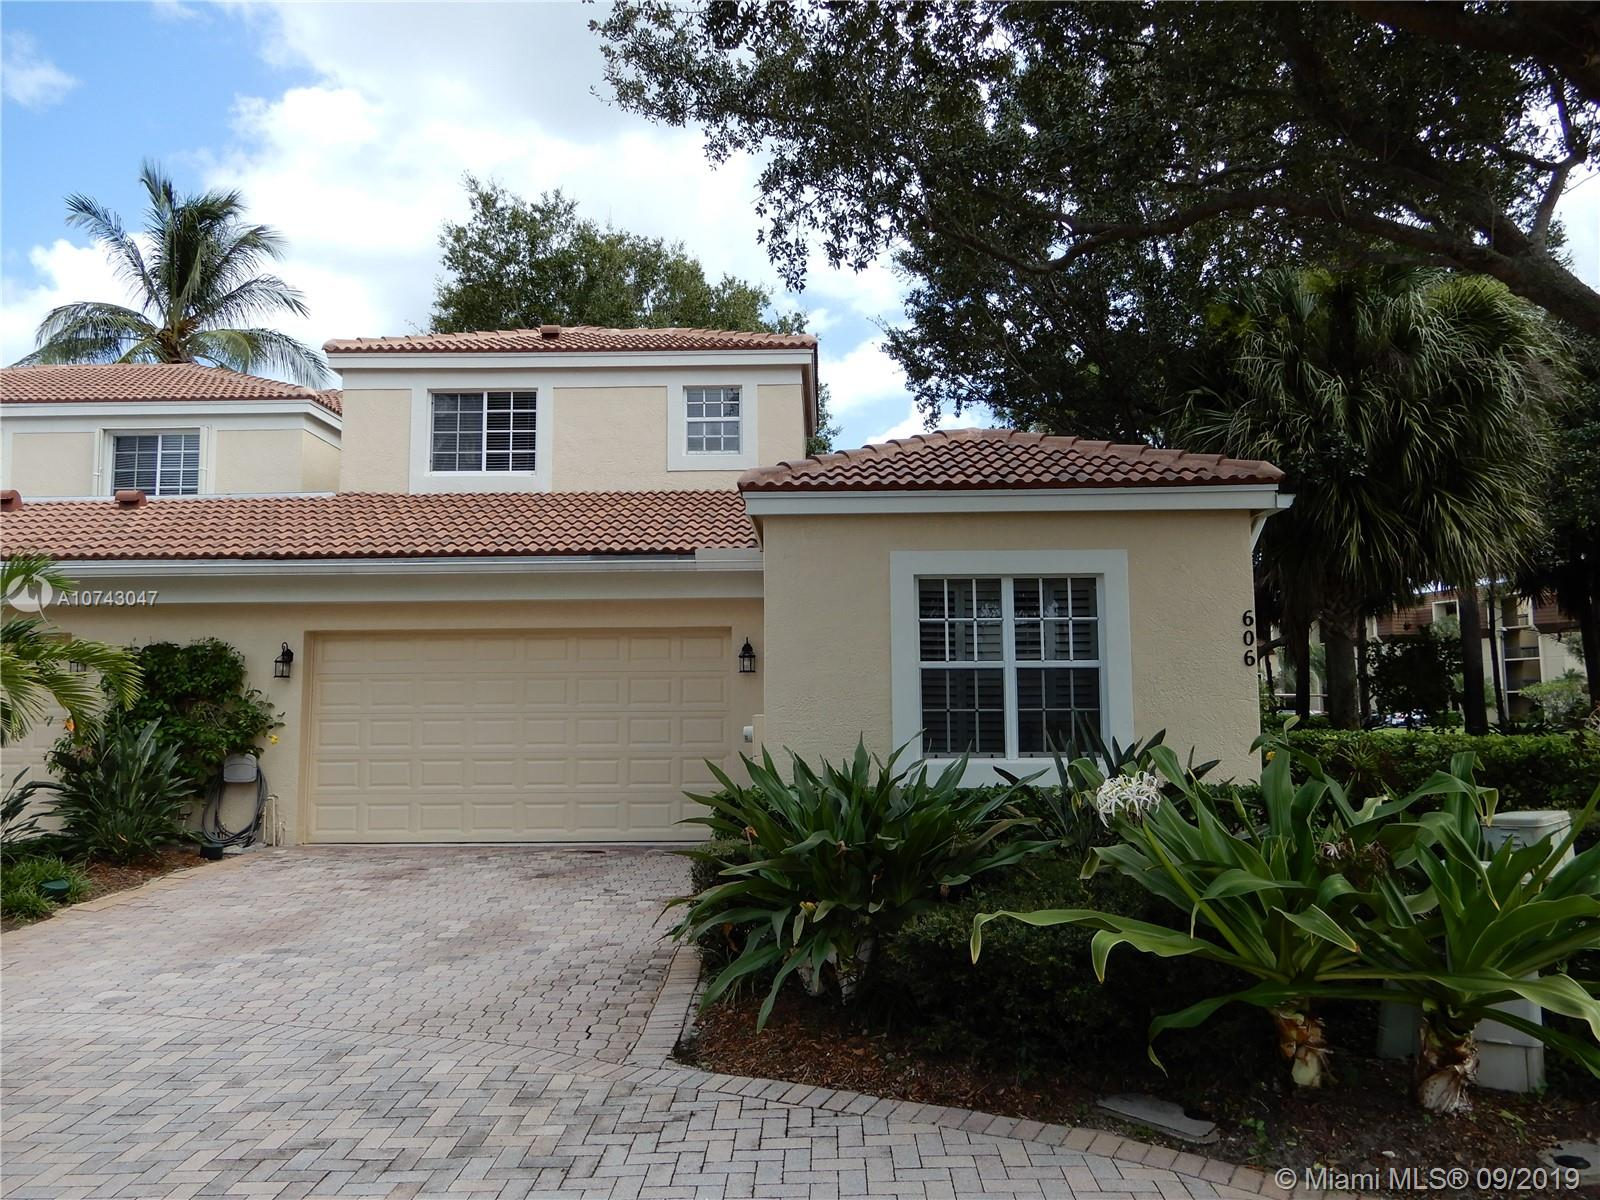 606 Commons Ln, Palm Beach Gardens, FL 33418